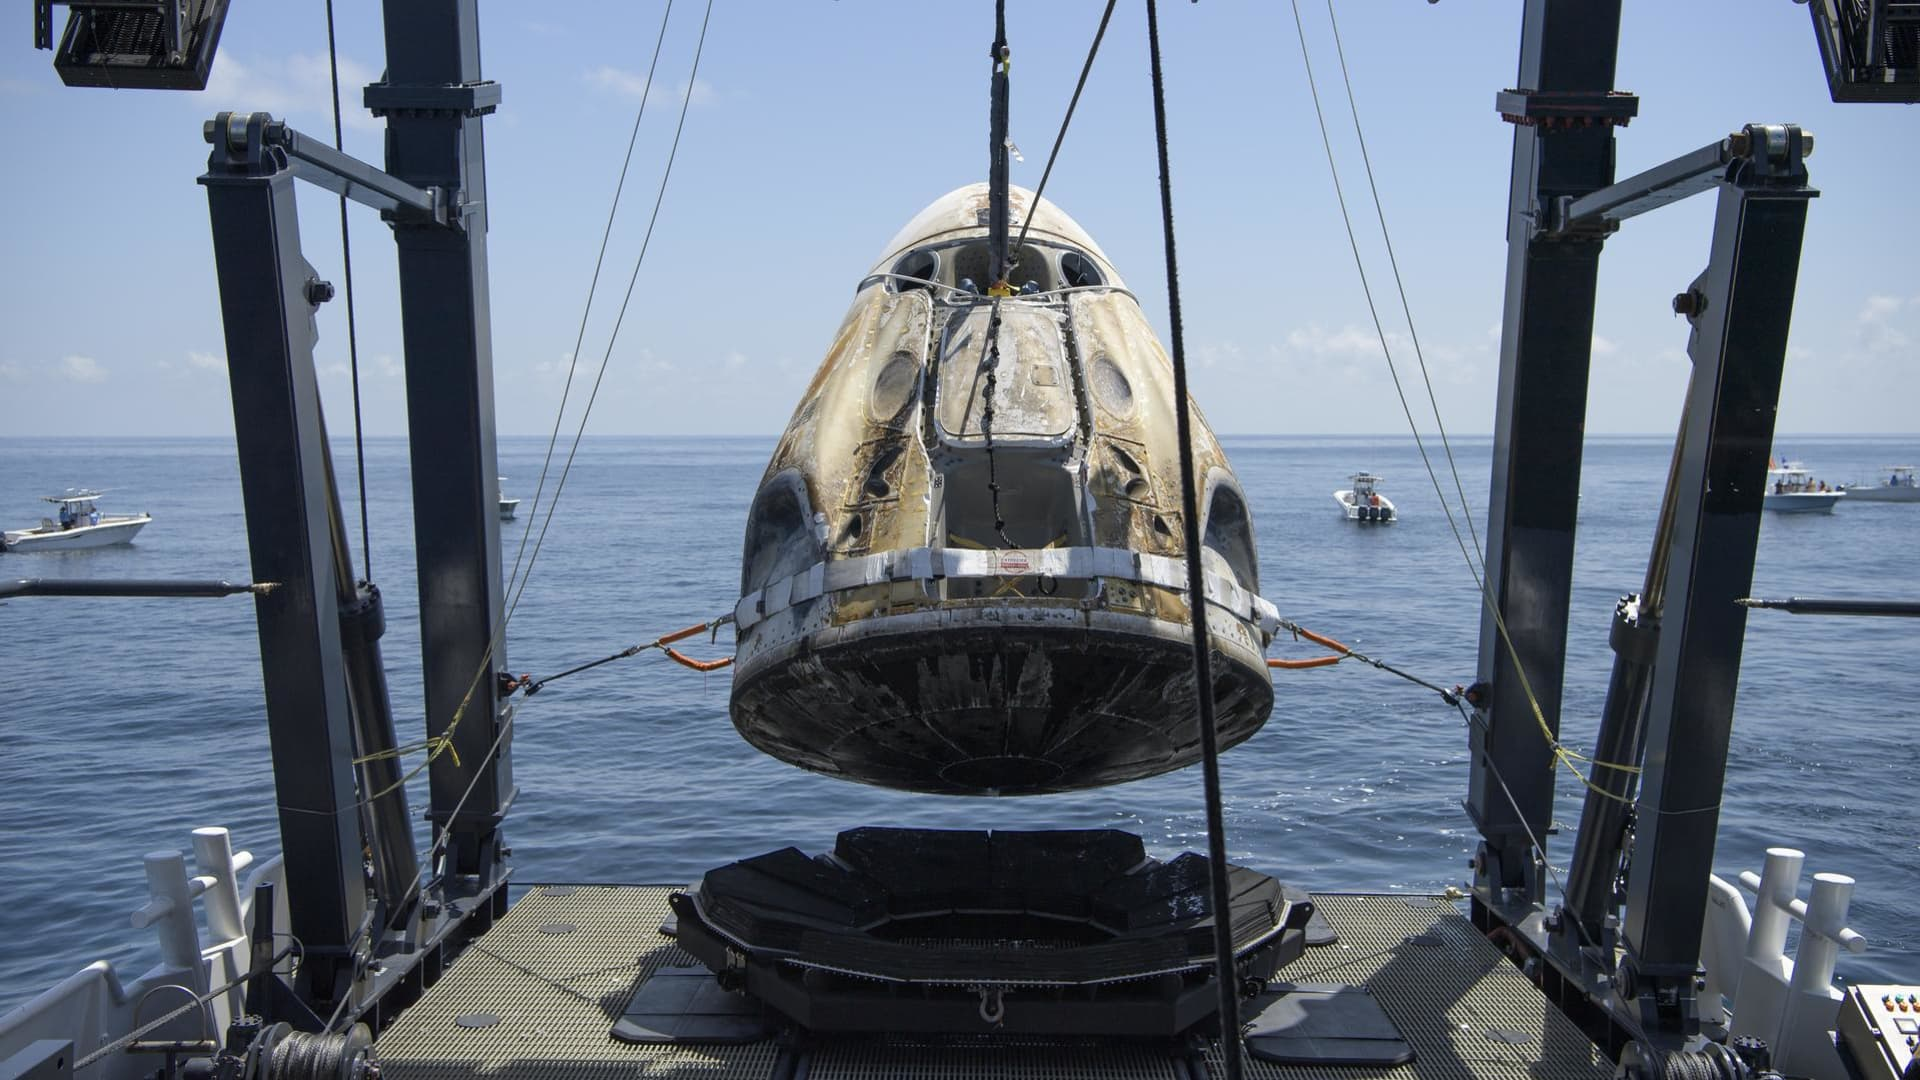 The SpaceX Crew Dragon Endeavour spacecraft is lifted onto the SpaceX GO Navigator recovery ship shortly after it landed with NASA astronauts Robert Behnken and Douglas Hurley onboard in the Gulf of Mexico off the coast of Pensacola, Florida, Sunday, Aug. 2, 2020.